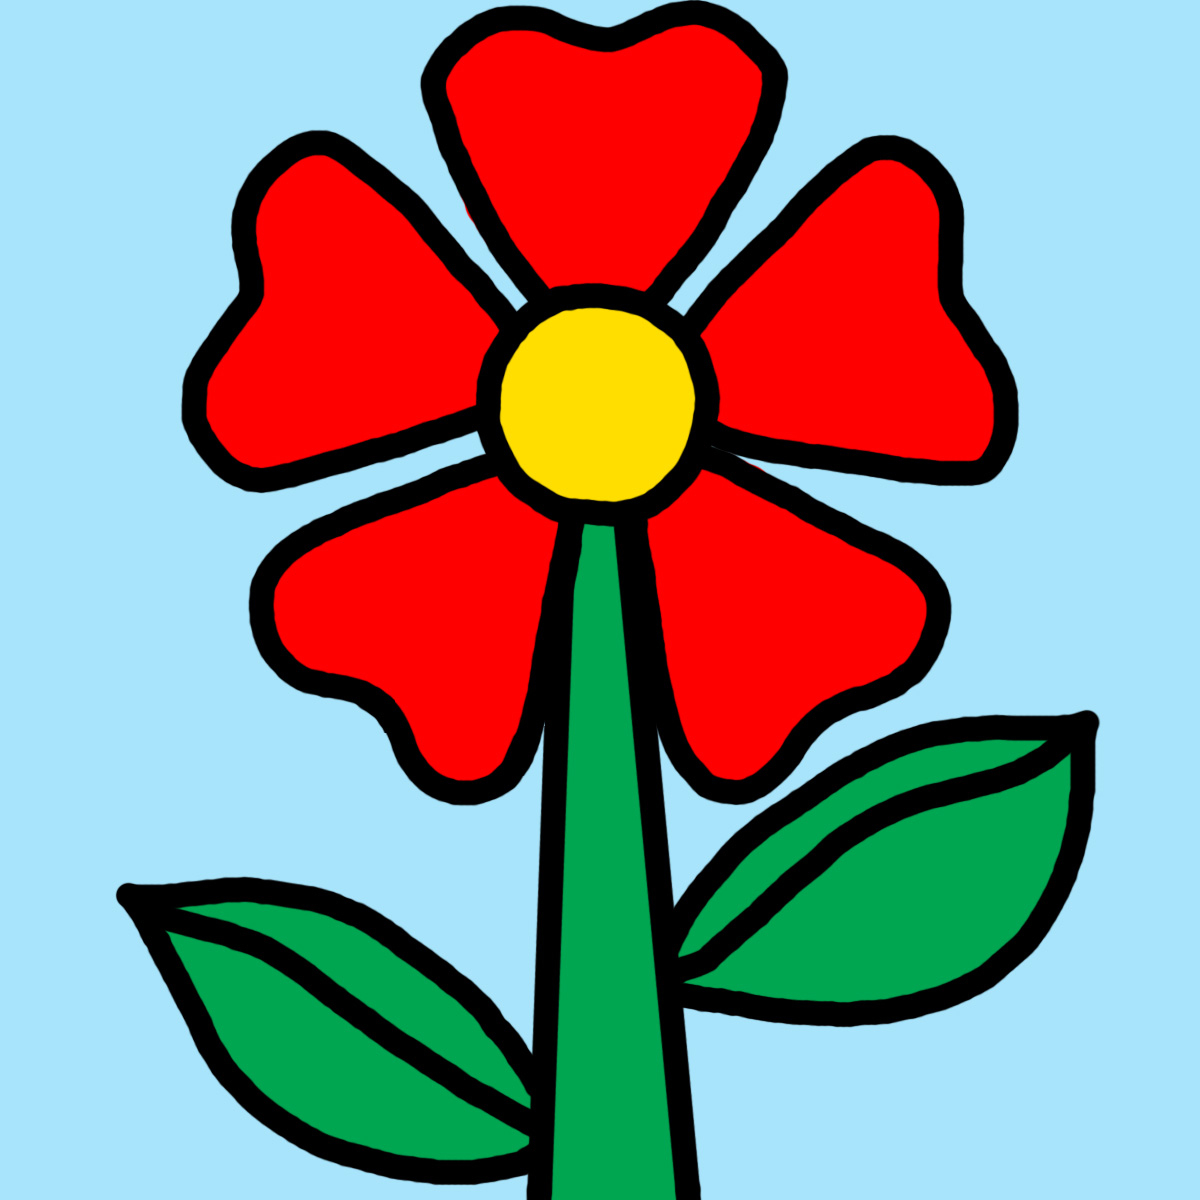 Clip Art Of Flowers Clipart Collection - Free Printable Clip Art Flowers